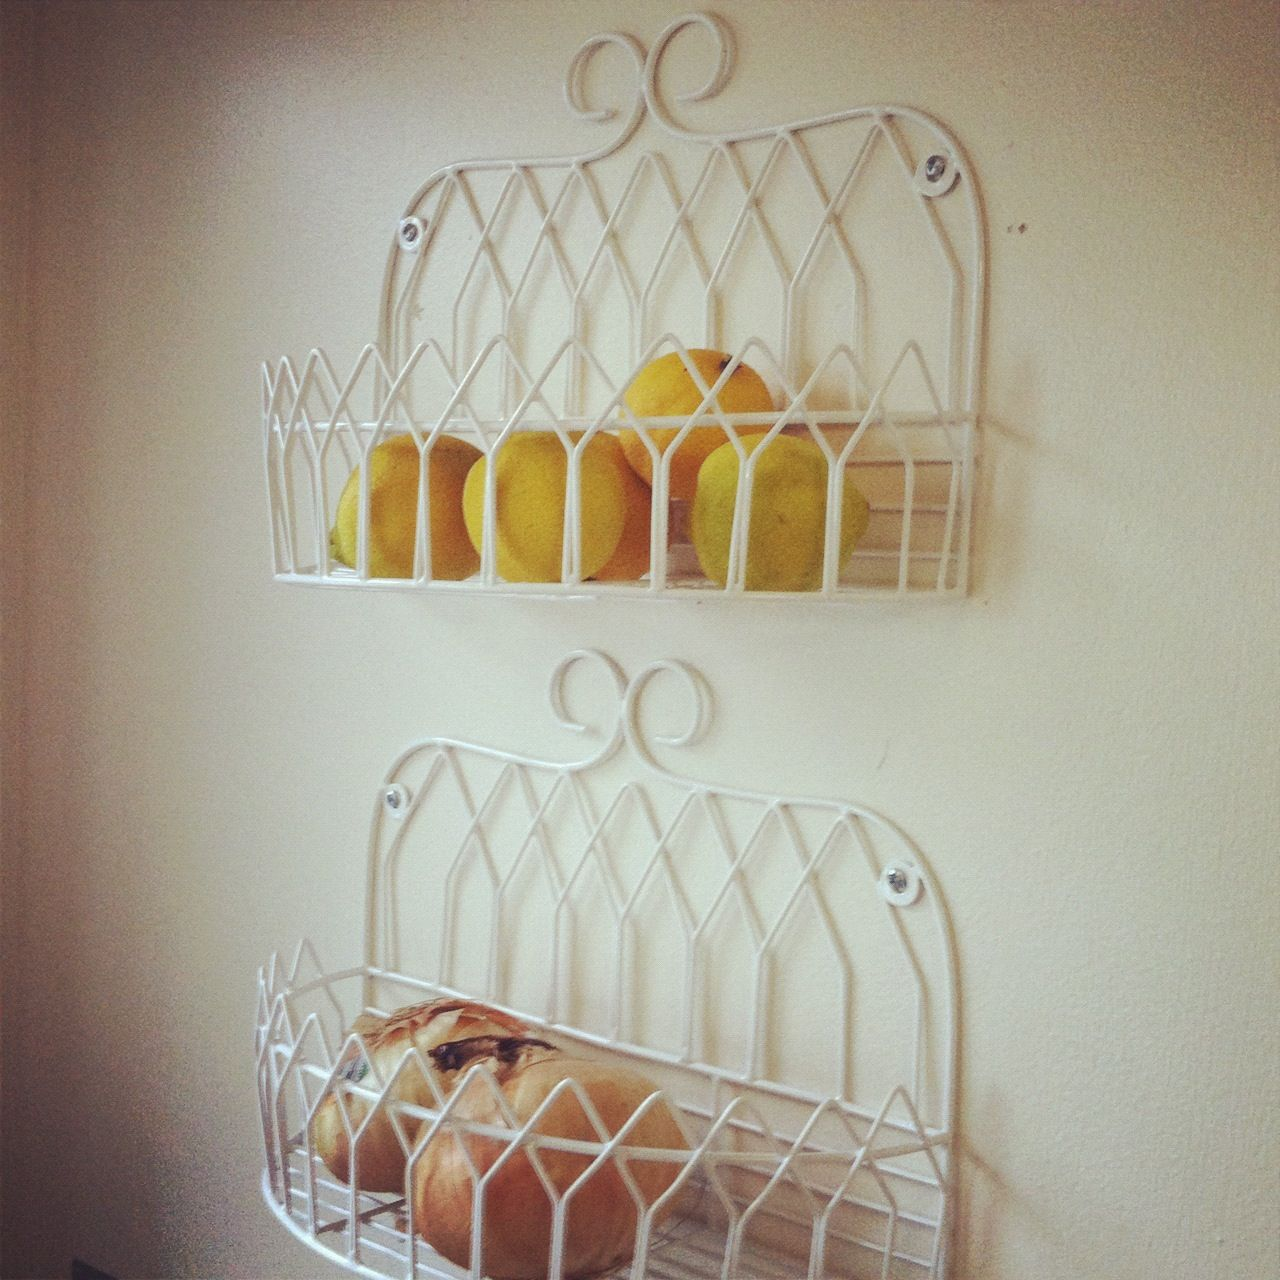 Wall Hanging Storage hanging basket kitchen wall storage, cute to keep fruit and